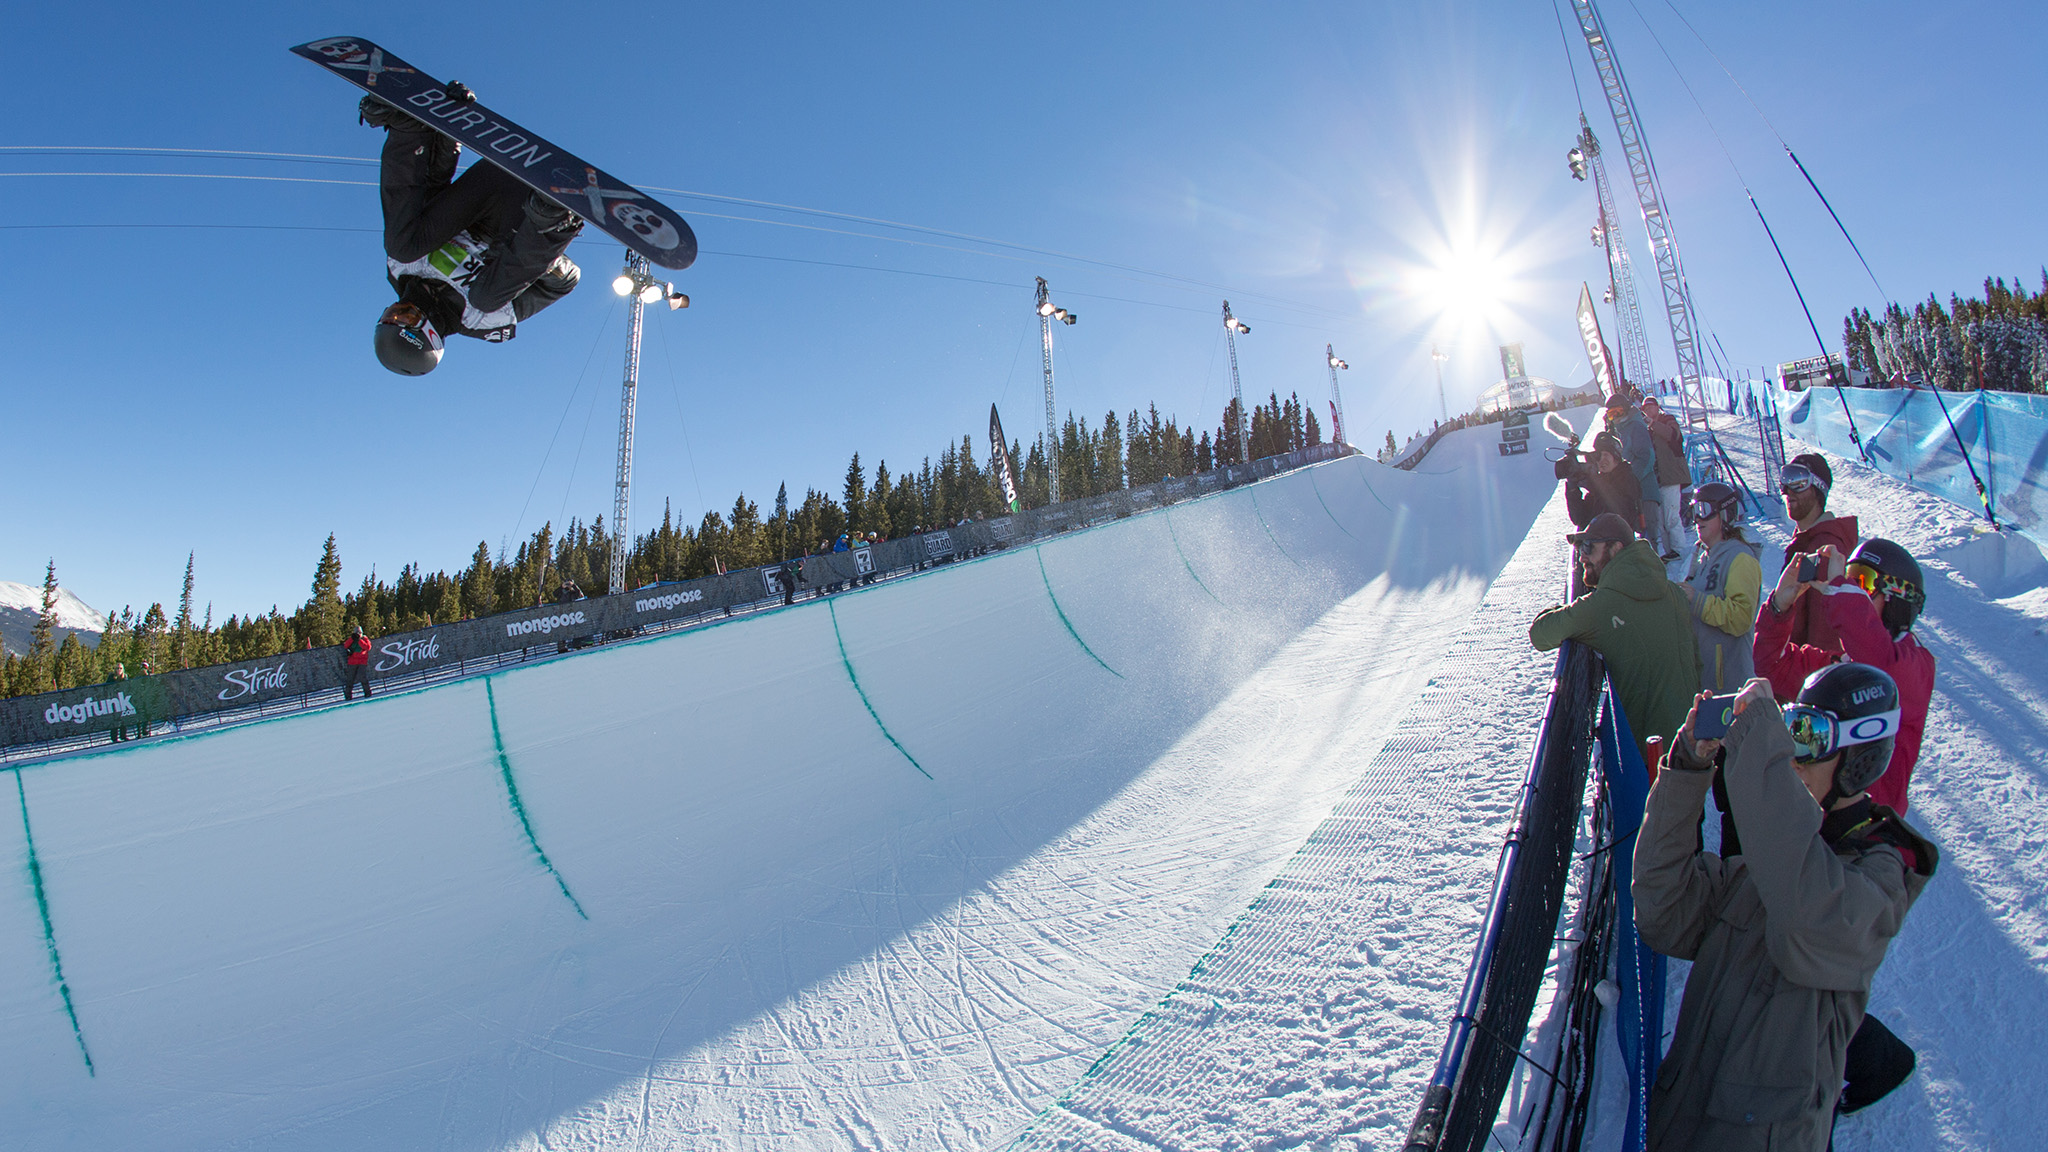 Shaun White, seen here during Dew Tour Mountain Championships qualifying, finished in second place behind Greg Bretz on Saturday in the Superpipe finals.